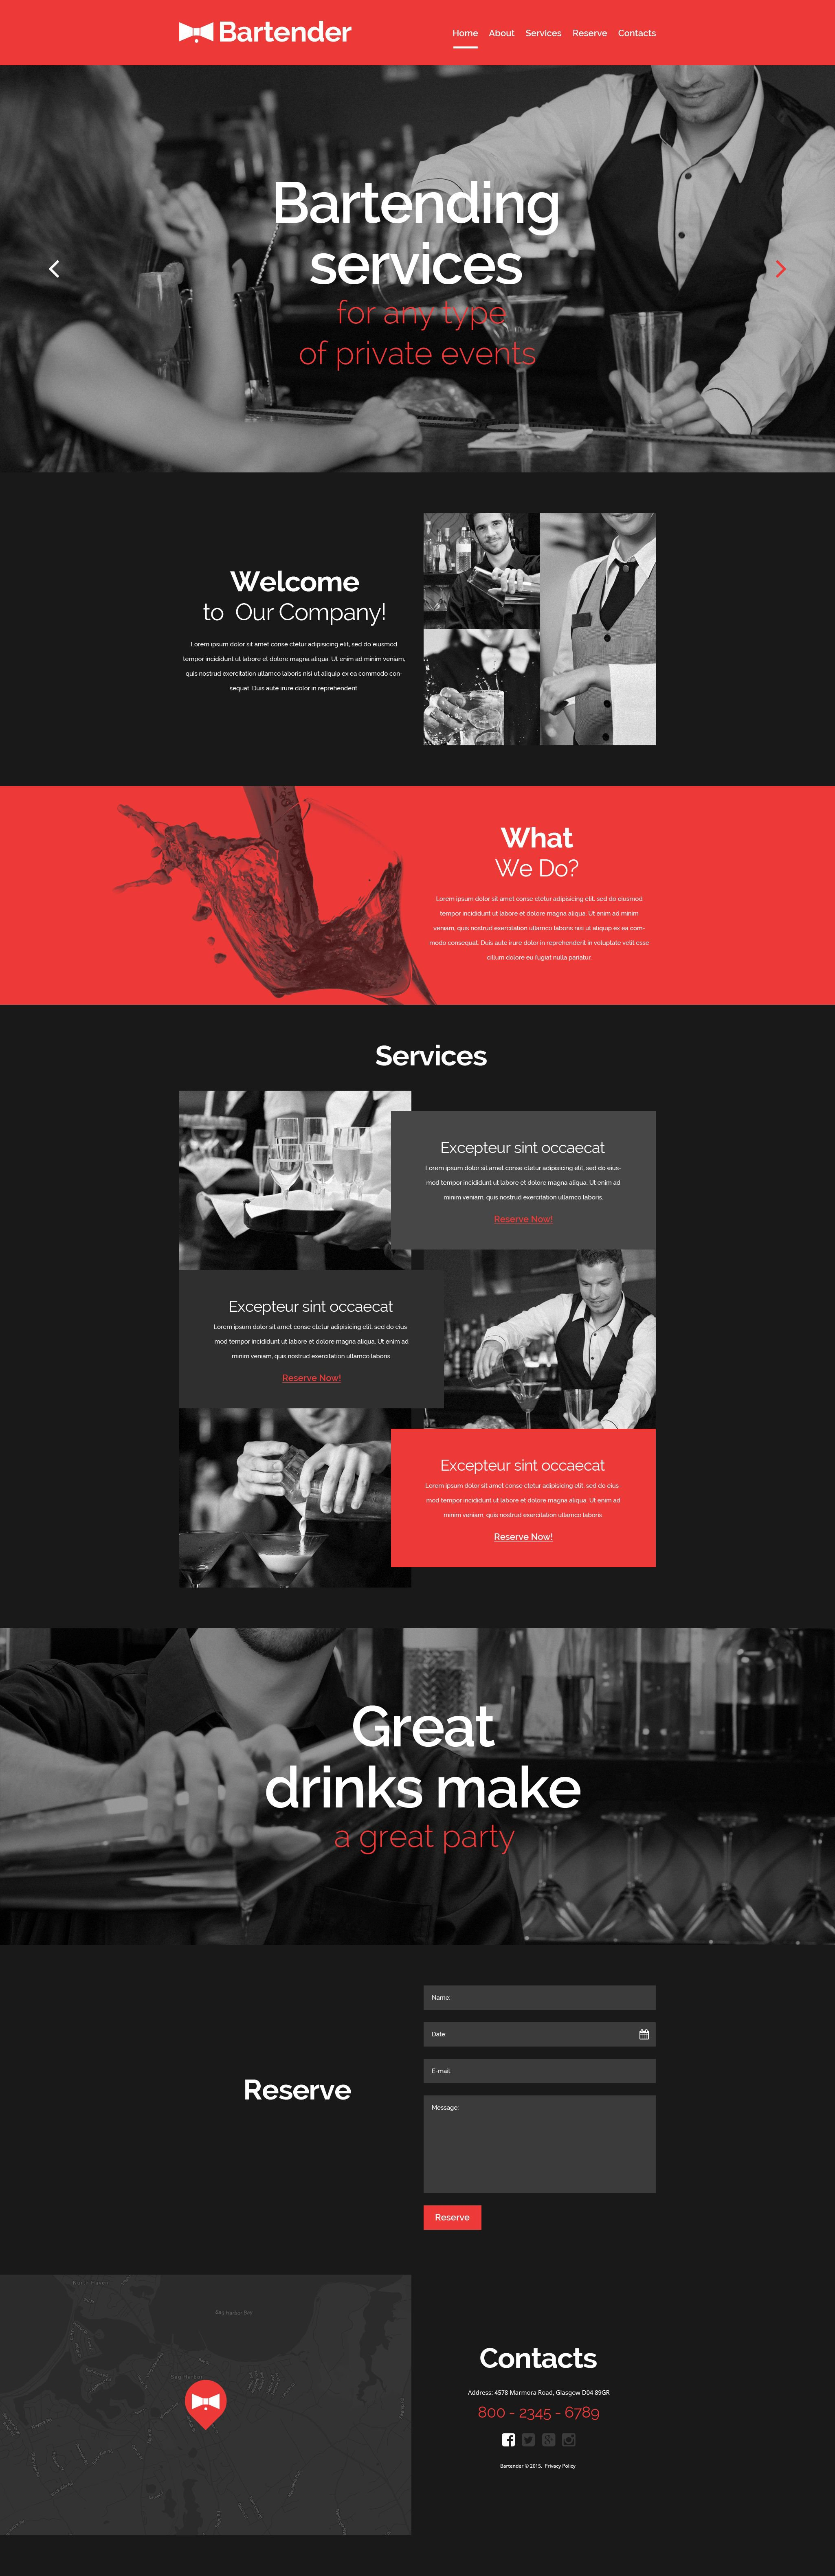 The Bartender Professional Site Bootstrap Design 53944, one of the best website templates of its kind (cafe and restaurant, most popular), also known as Bartender professional site website template, cocktail website template, party website template, personal page website template, awards club website template, night and related with Bartender professional site, cocktail, party, personal page, awards club, night, etc.